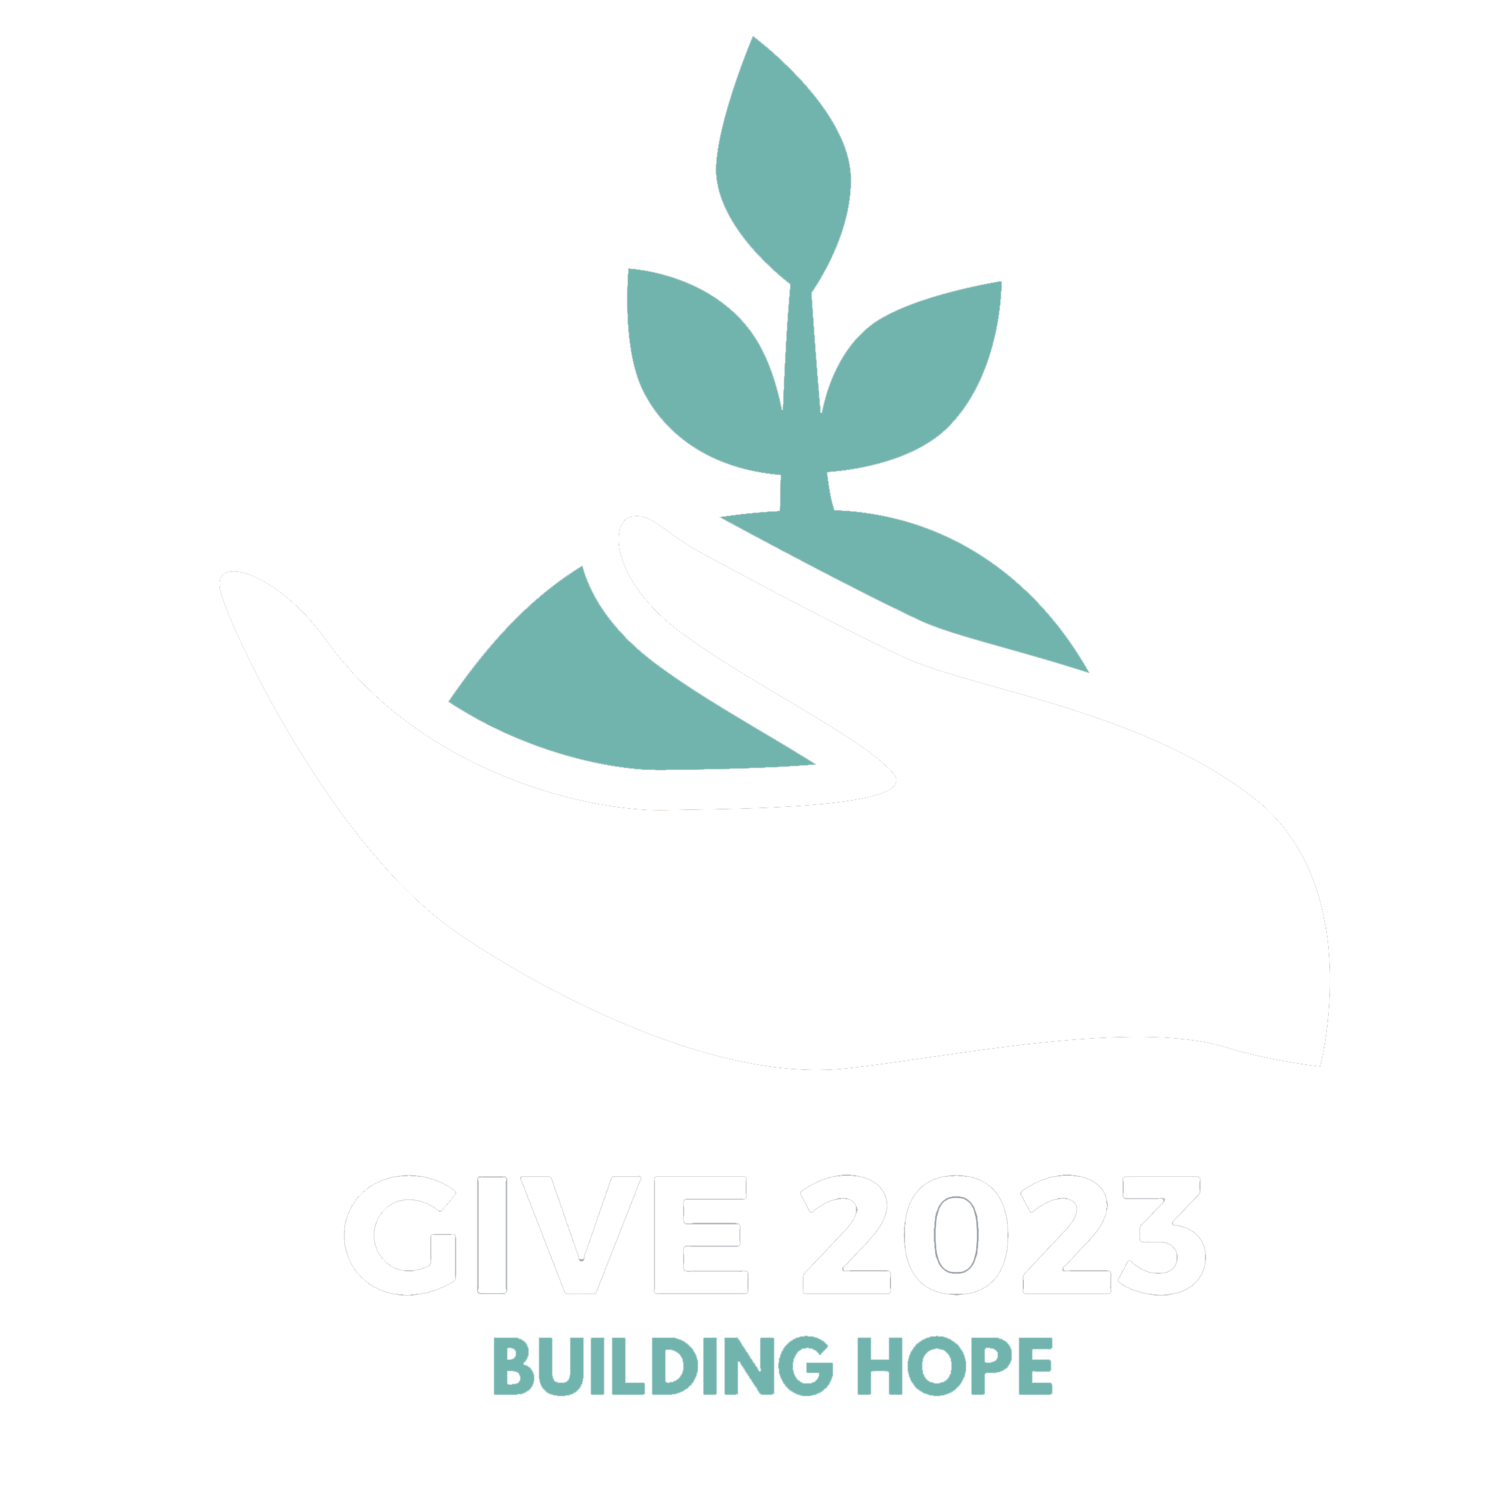 GIVE 2023